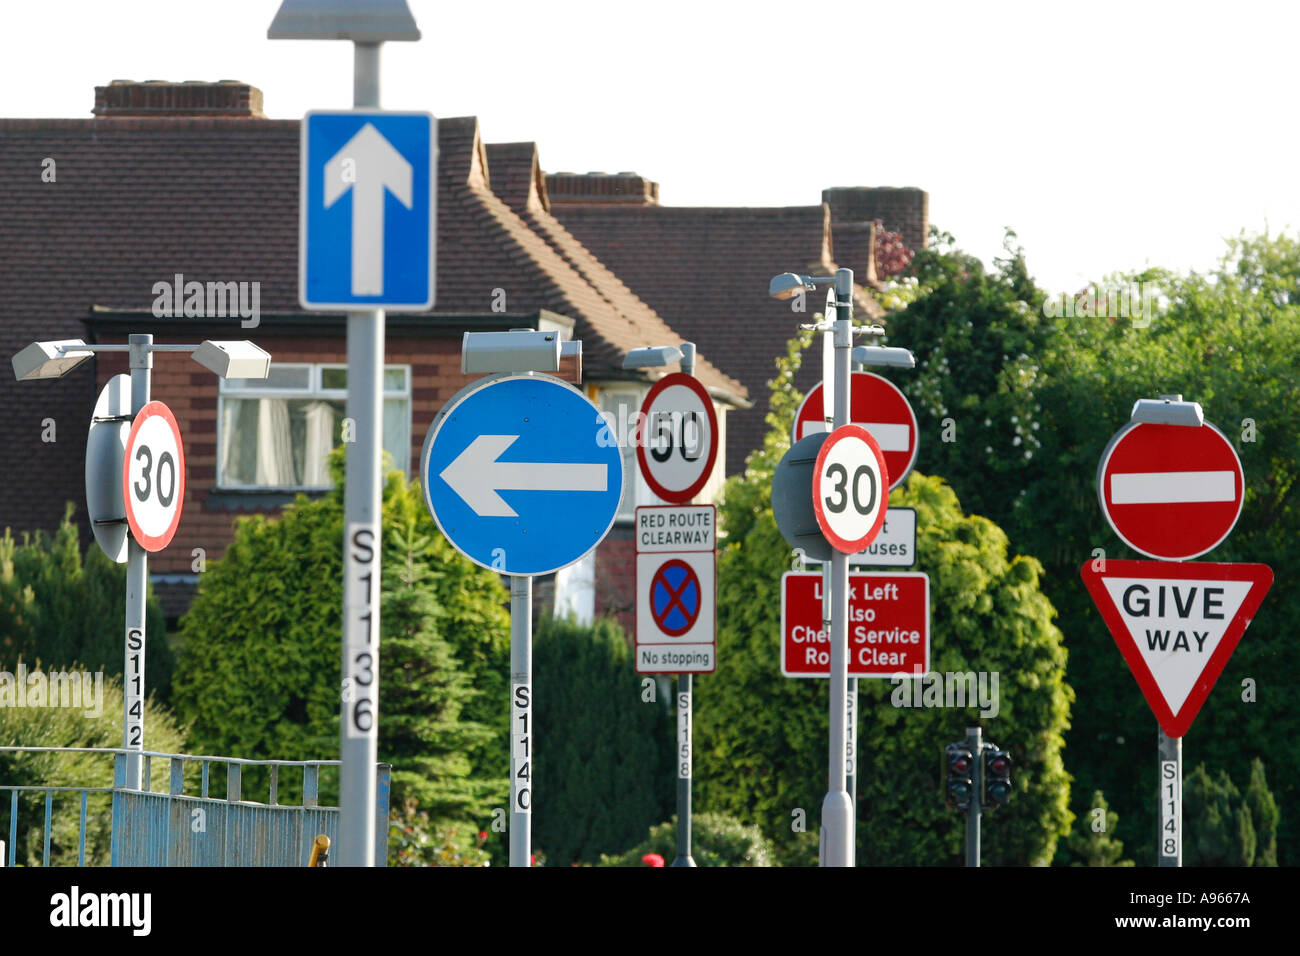 confusing road signs in surrey england stock photo